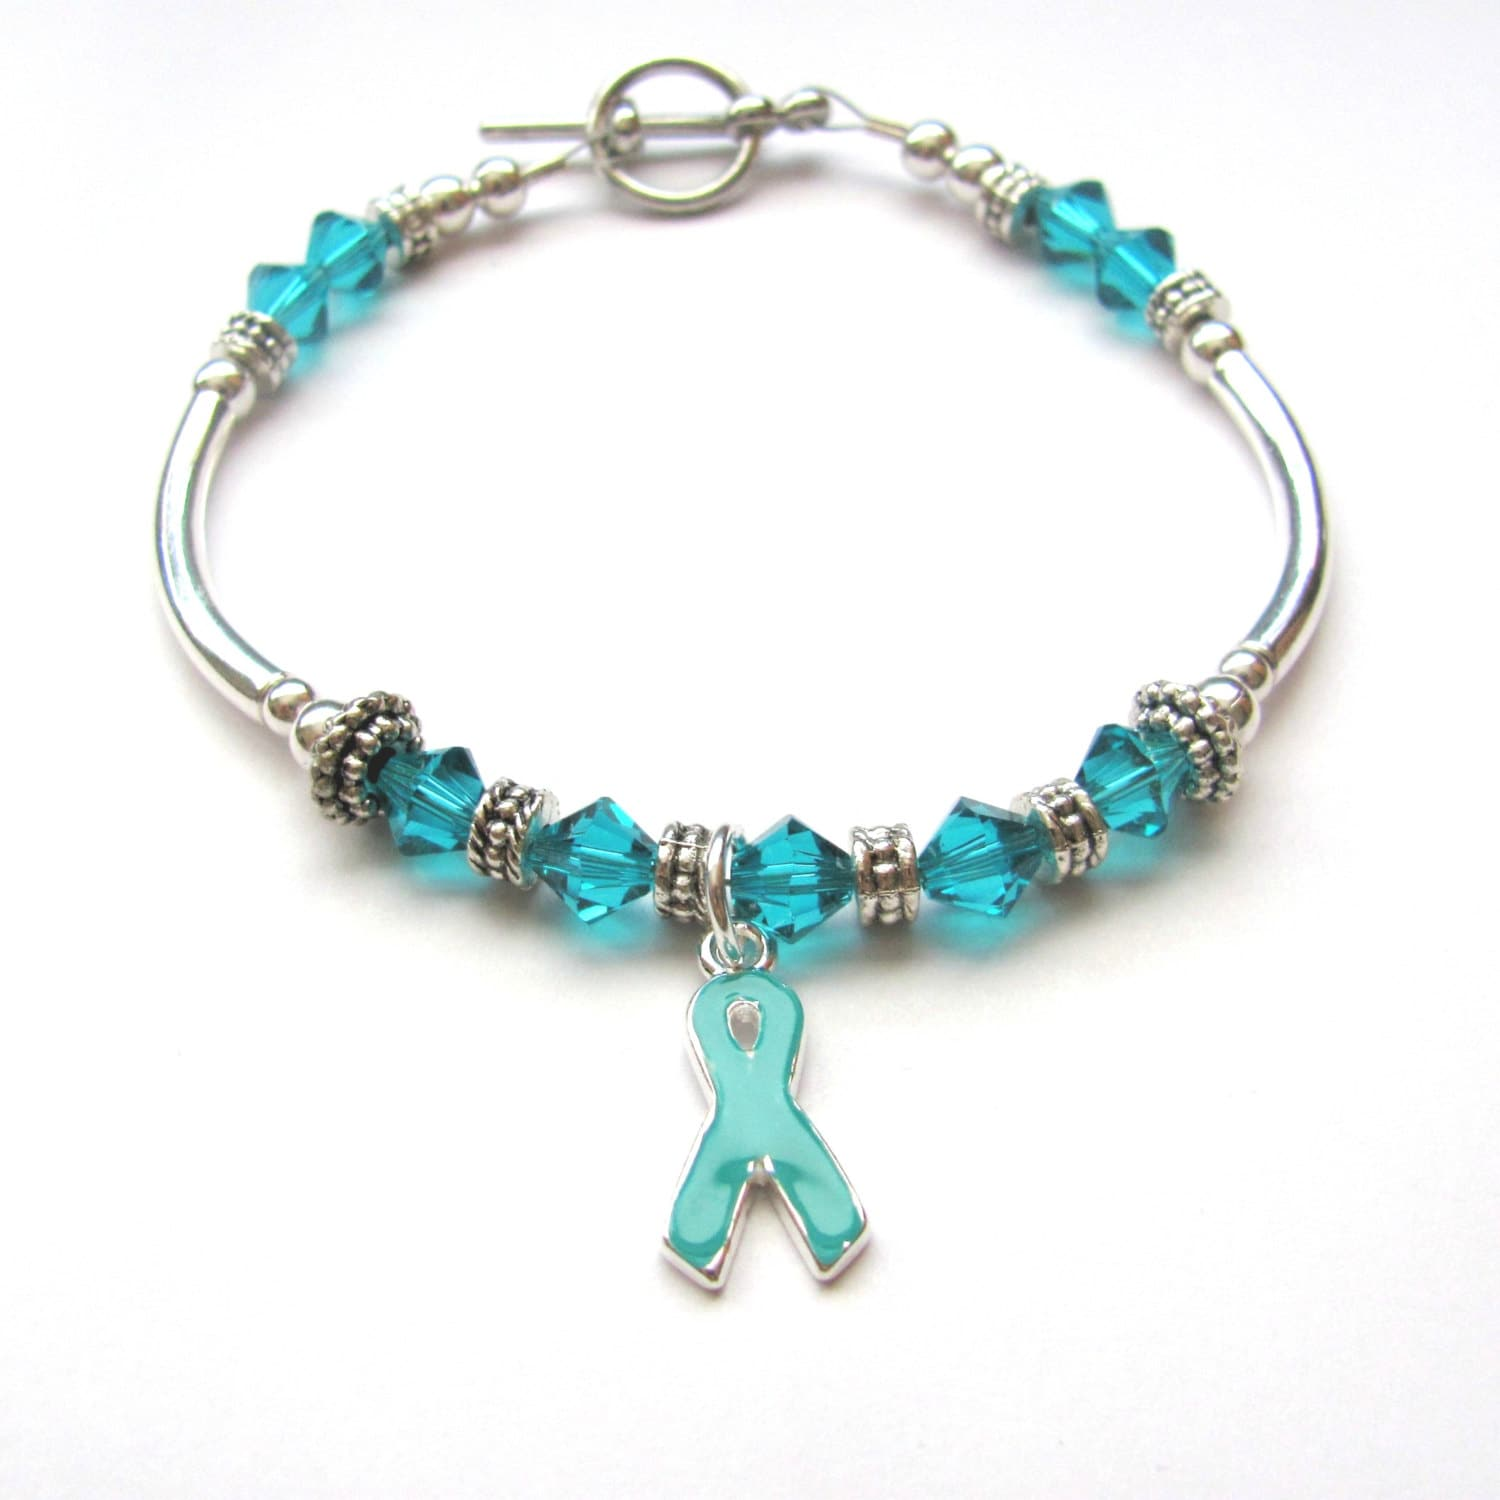 bracelets bracelet products health vida ocd mental charity pura awareness